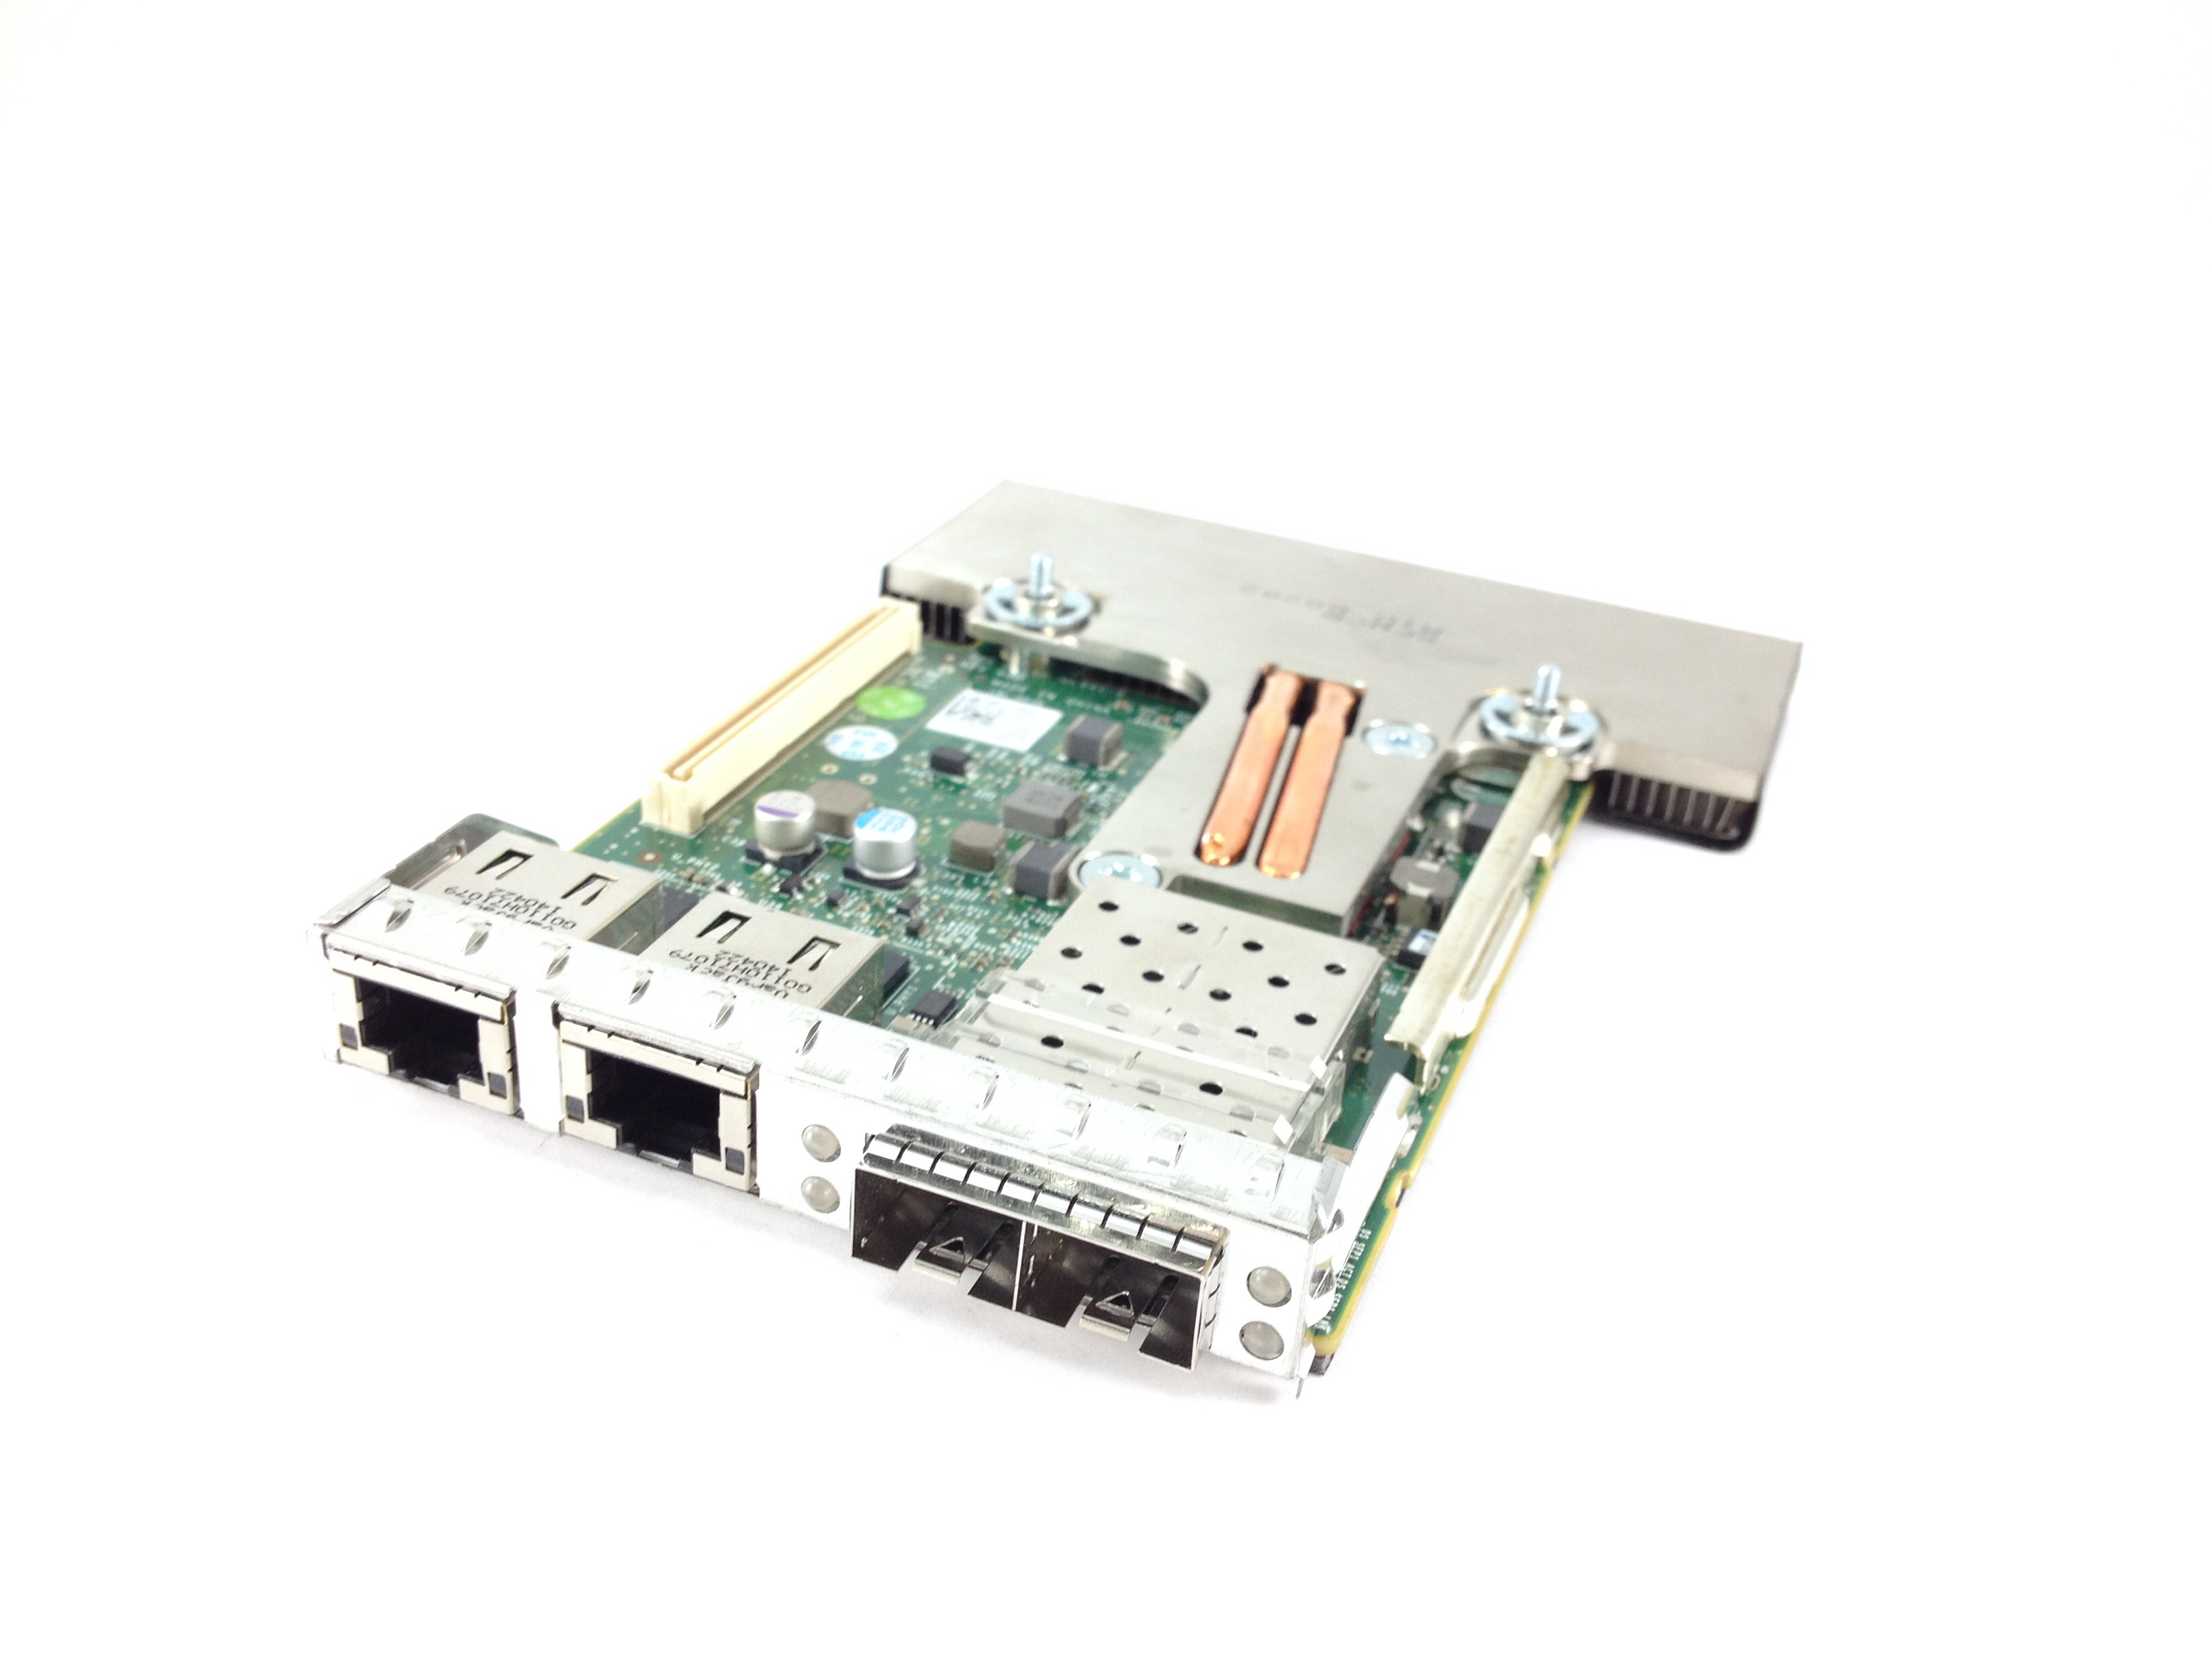 DELL BROADCOM 57800S 2 X 10GBE SFP+ 2 X 1GBE NETWORK DAUGHTER CARD (165T0)